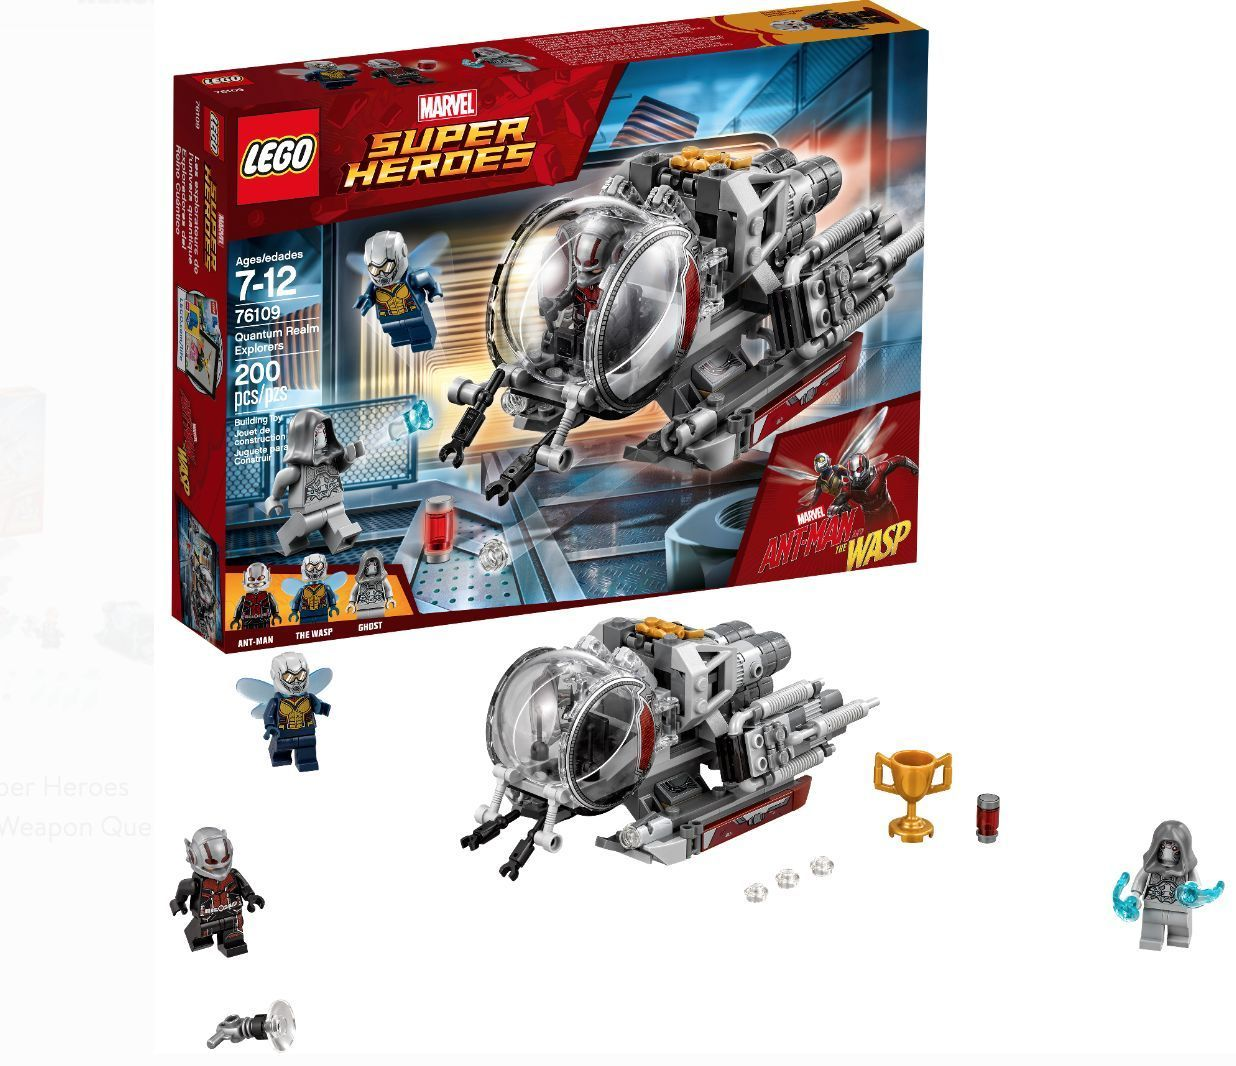 Holiday Gift Guide 2018: Toys That Live Up to the Hype